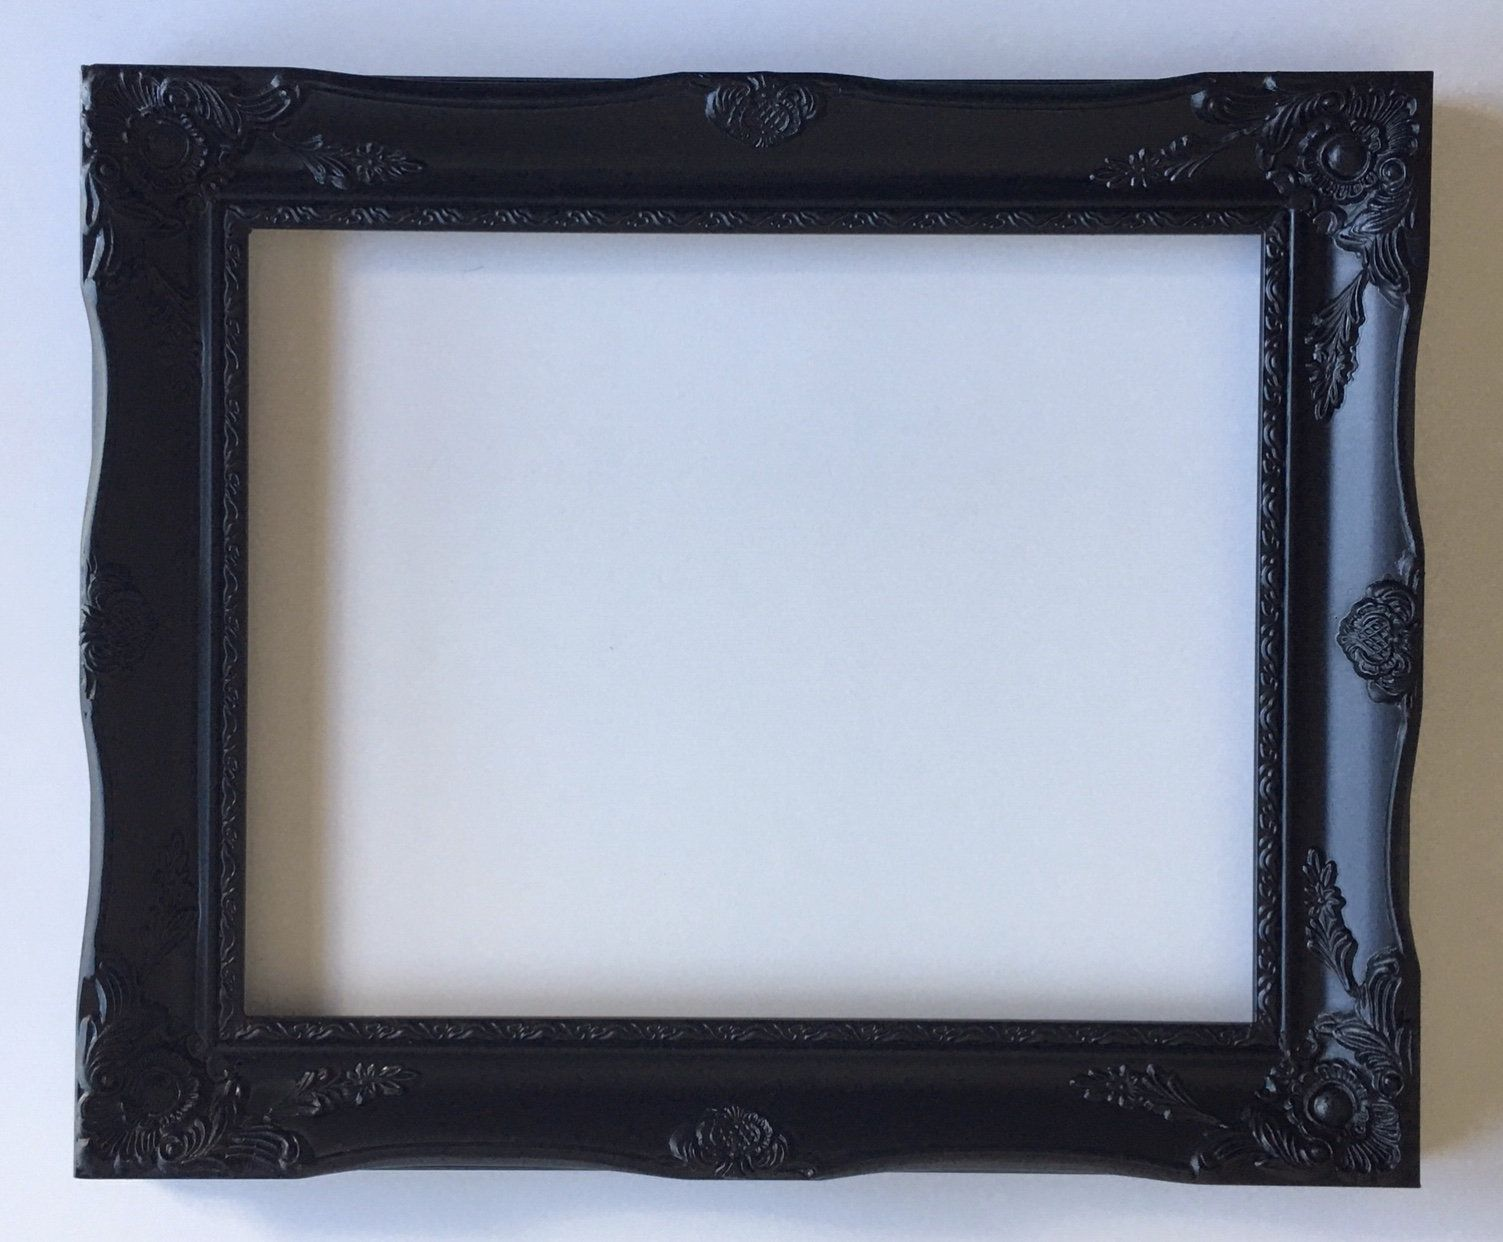 Matte Black Picture Frame With Glass And Back 11x14 Vintage Inspired Ornate Wall Gallery Farmhouse Chic Fast Ship Unique Gift Unique Picture Frames Black Picture Frames Picture Frames